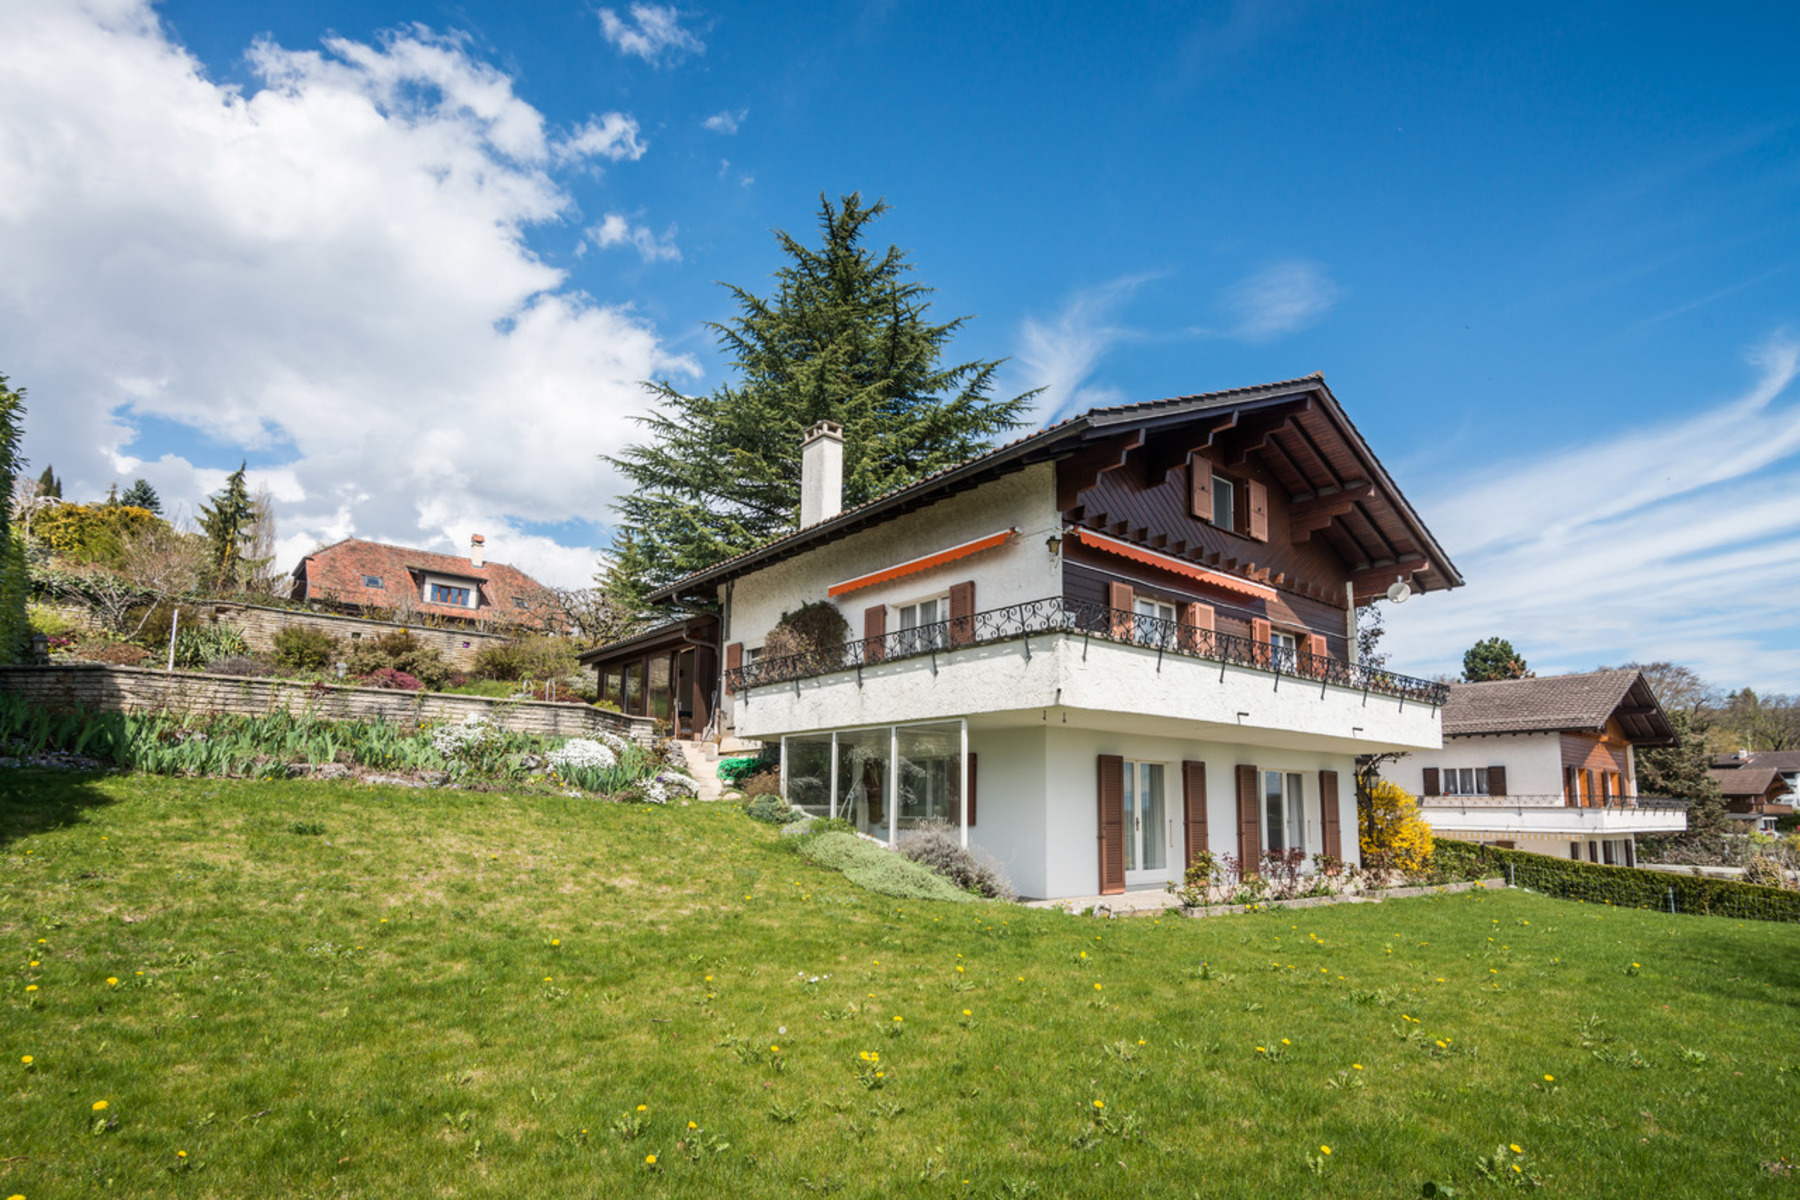 Single Family Home for Sale at Spacious house with swimming pool and panoramic views Genolier Genolier, 1272 Switzerland